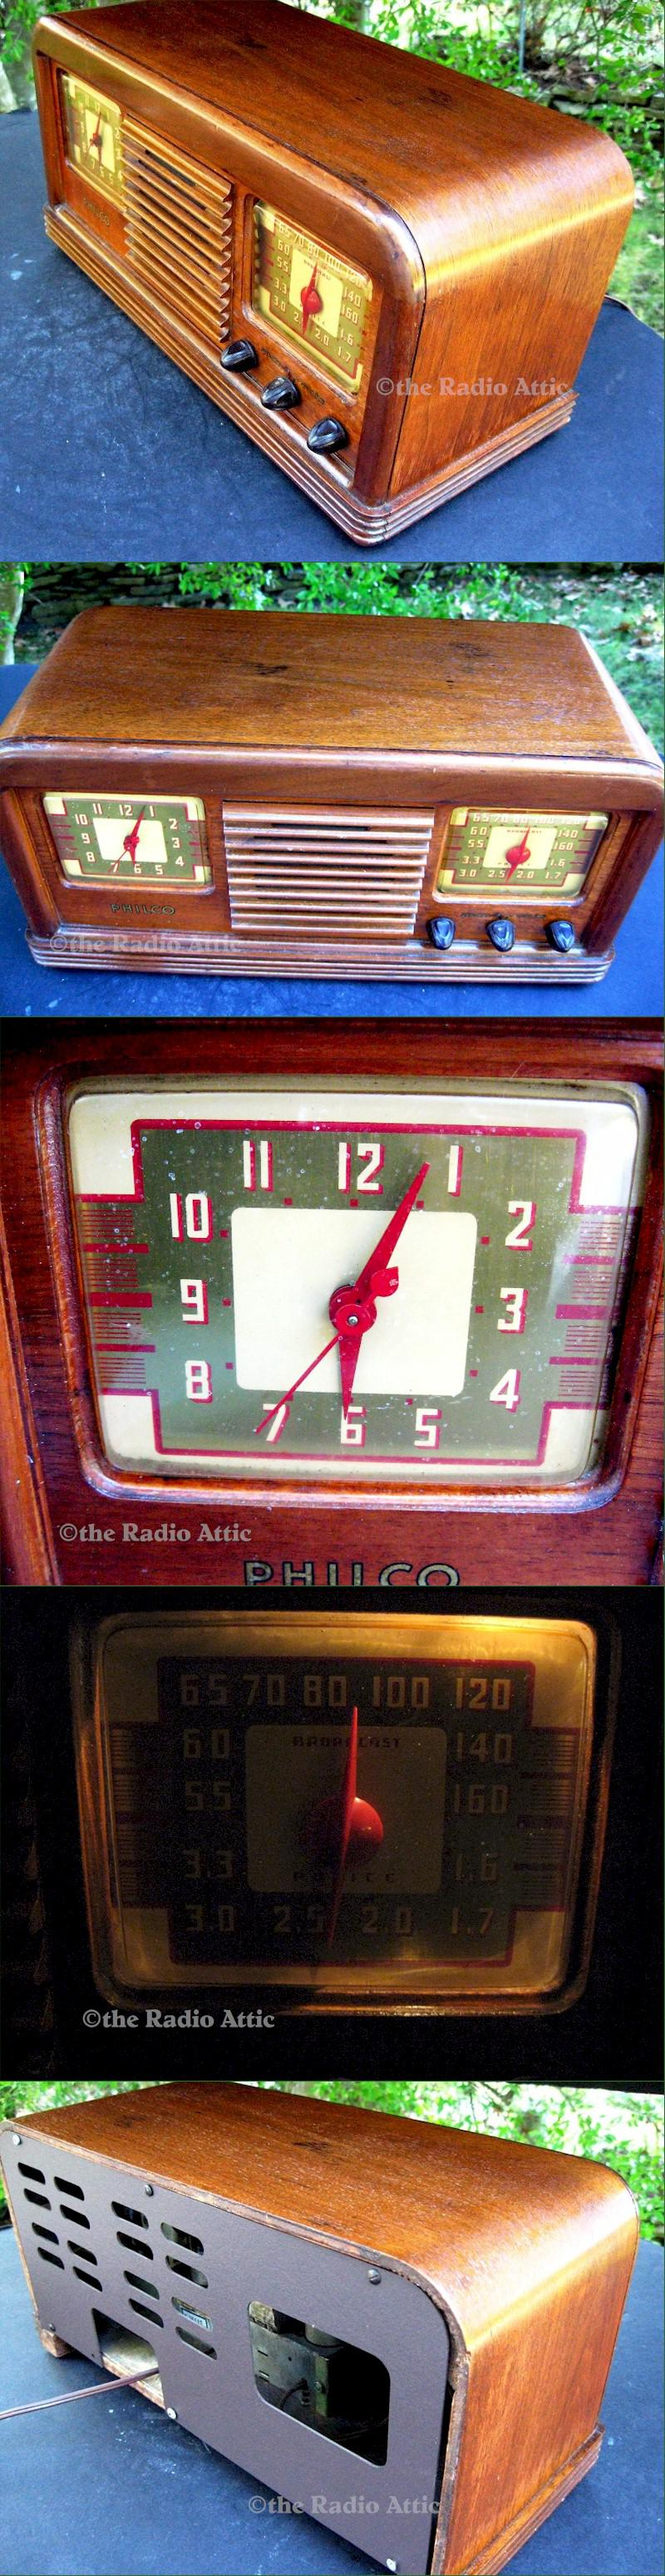 Philco 41-22CL Clock Radio (1941)